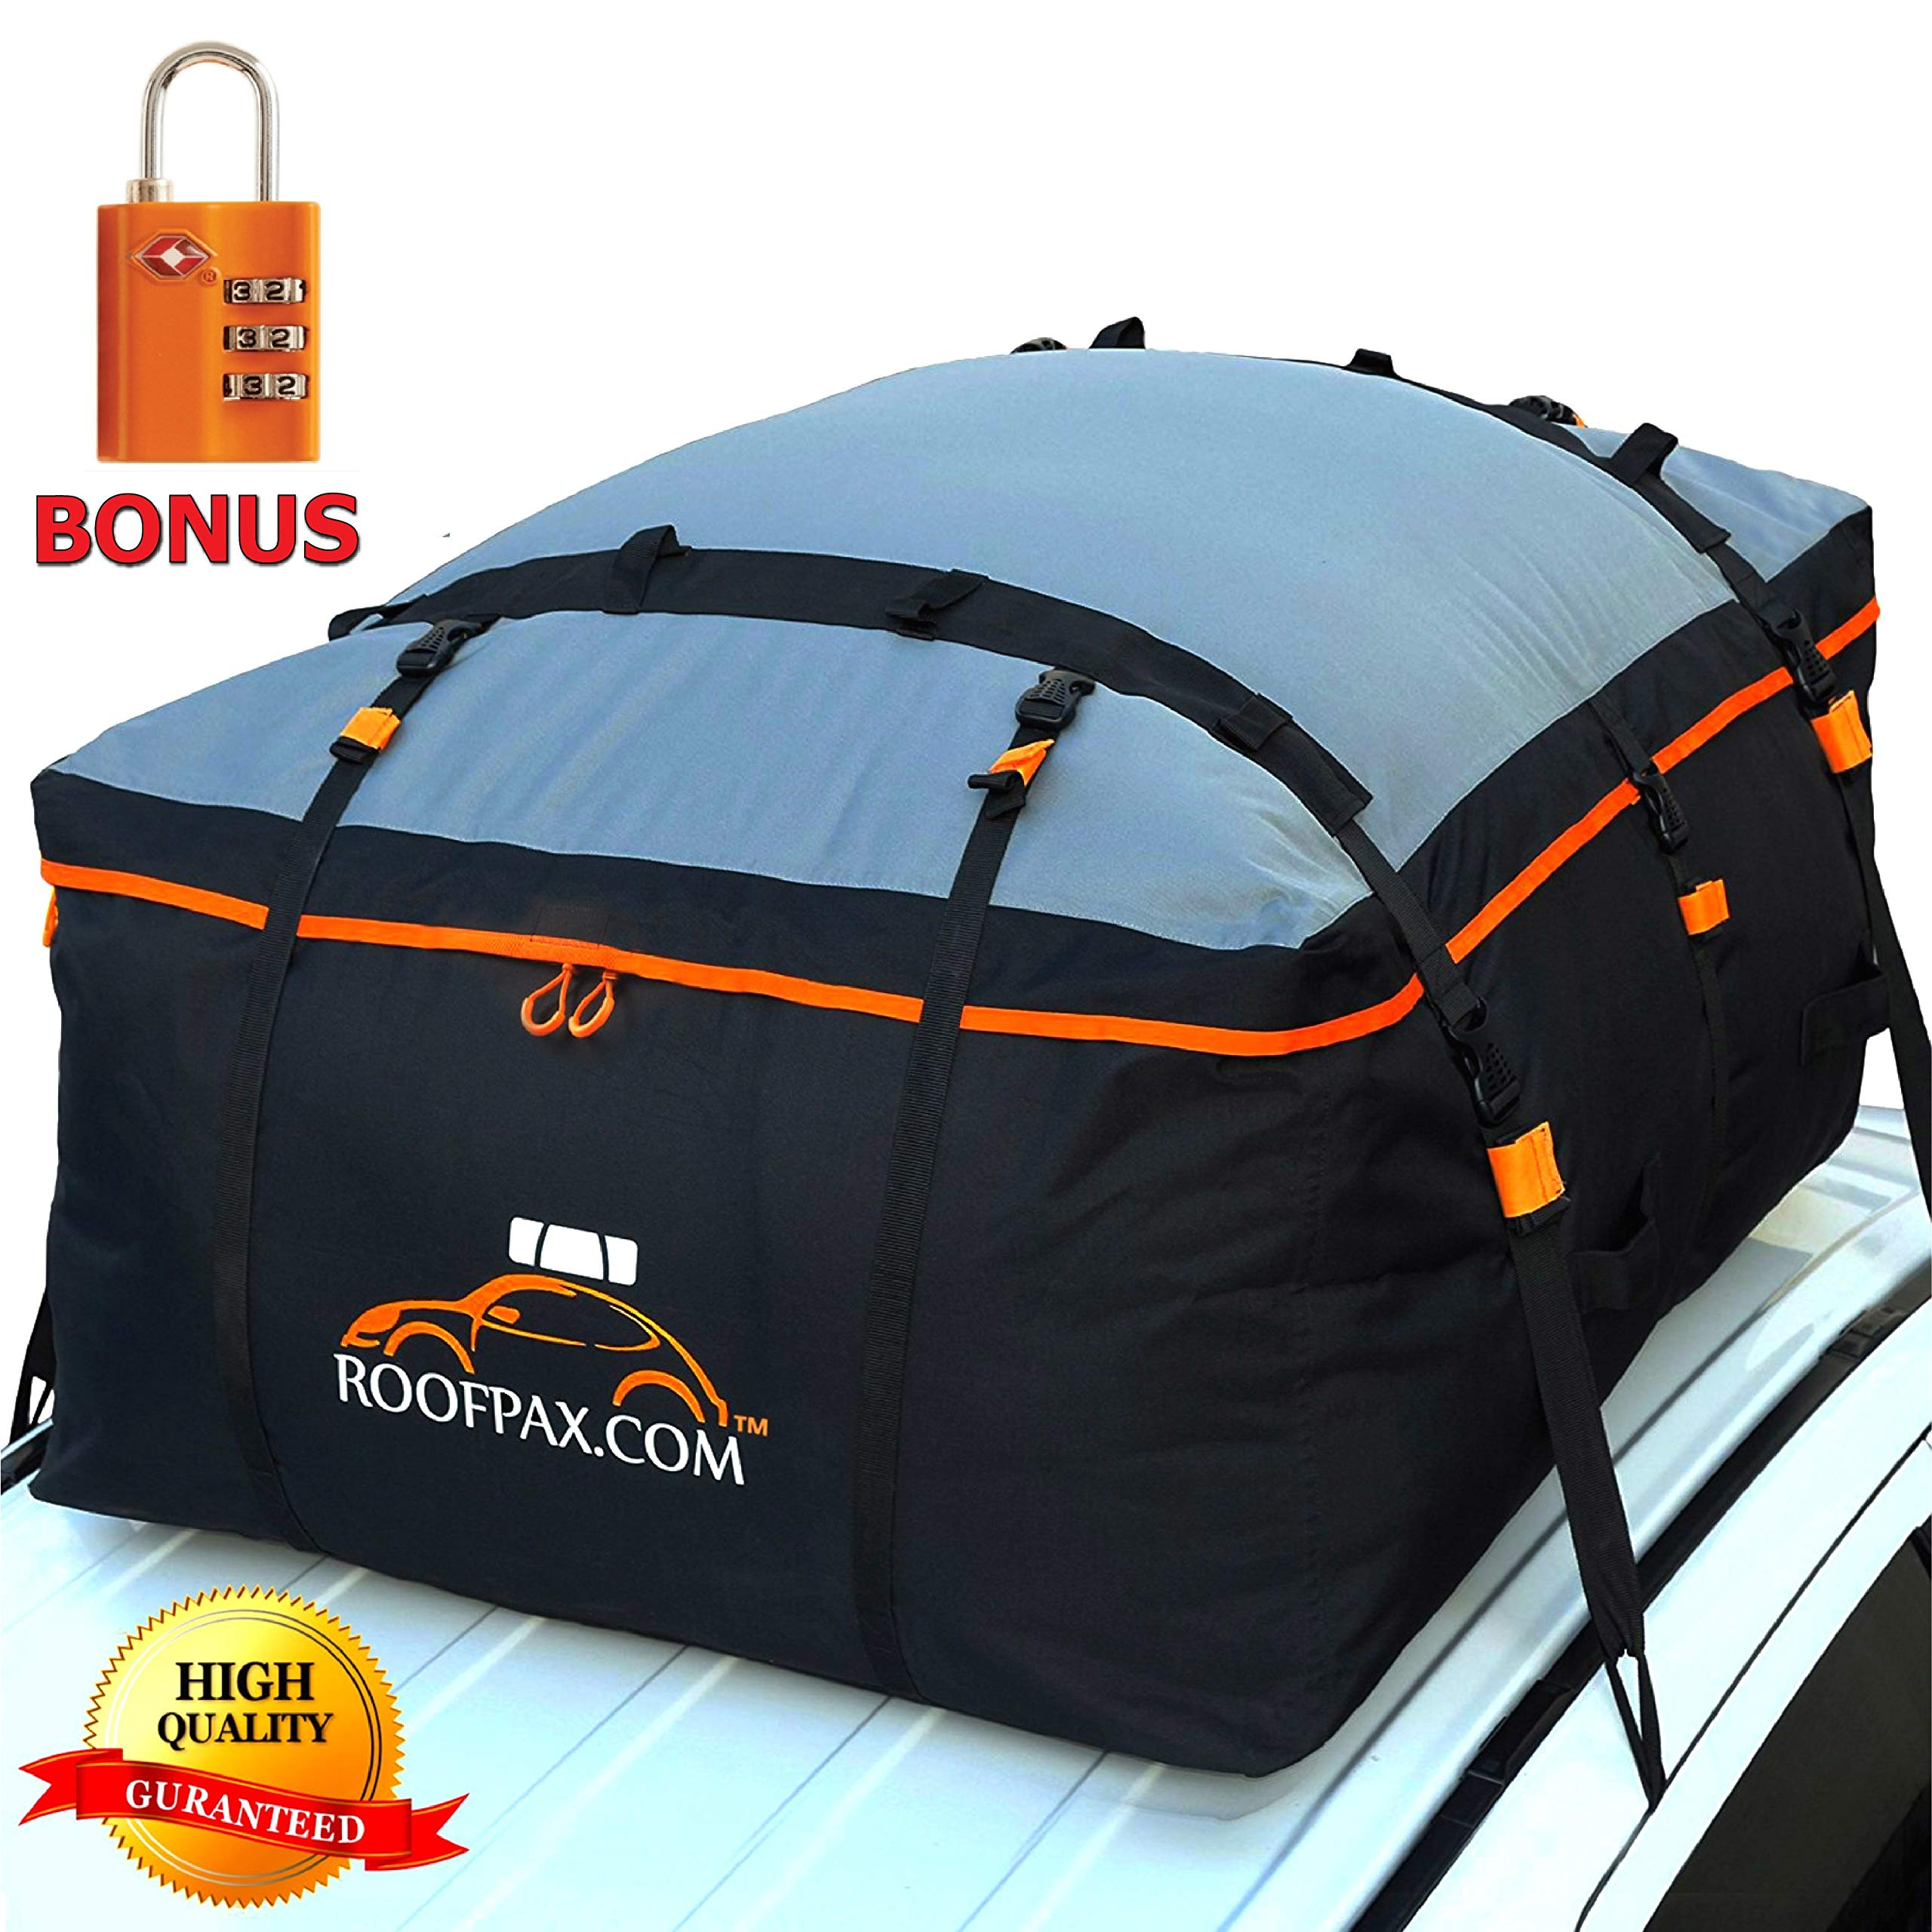 RoofPax Car Roof Bag & Rooftop Cargo Carrier - 15 Cubic Feet Heavy Duty Bag, 100% Waterproof Excellent Military Quality Roof-Top Car Bag - Fits All Cars with/Without Rack - 4 Door Hooks Included by RoofPax